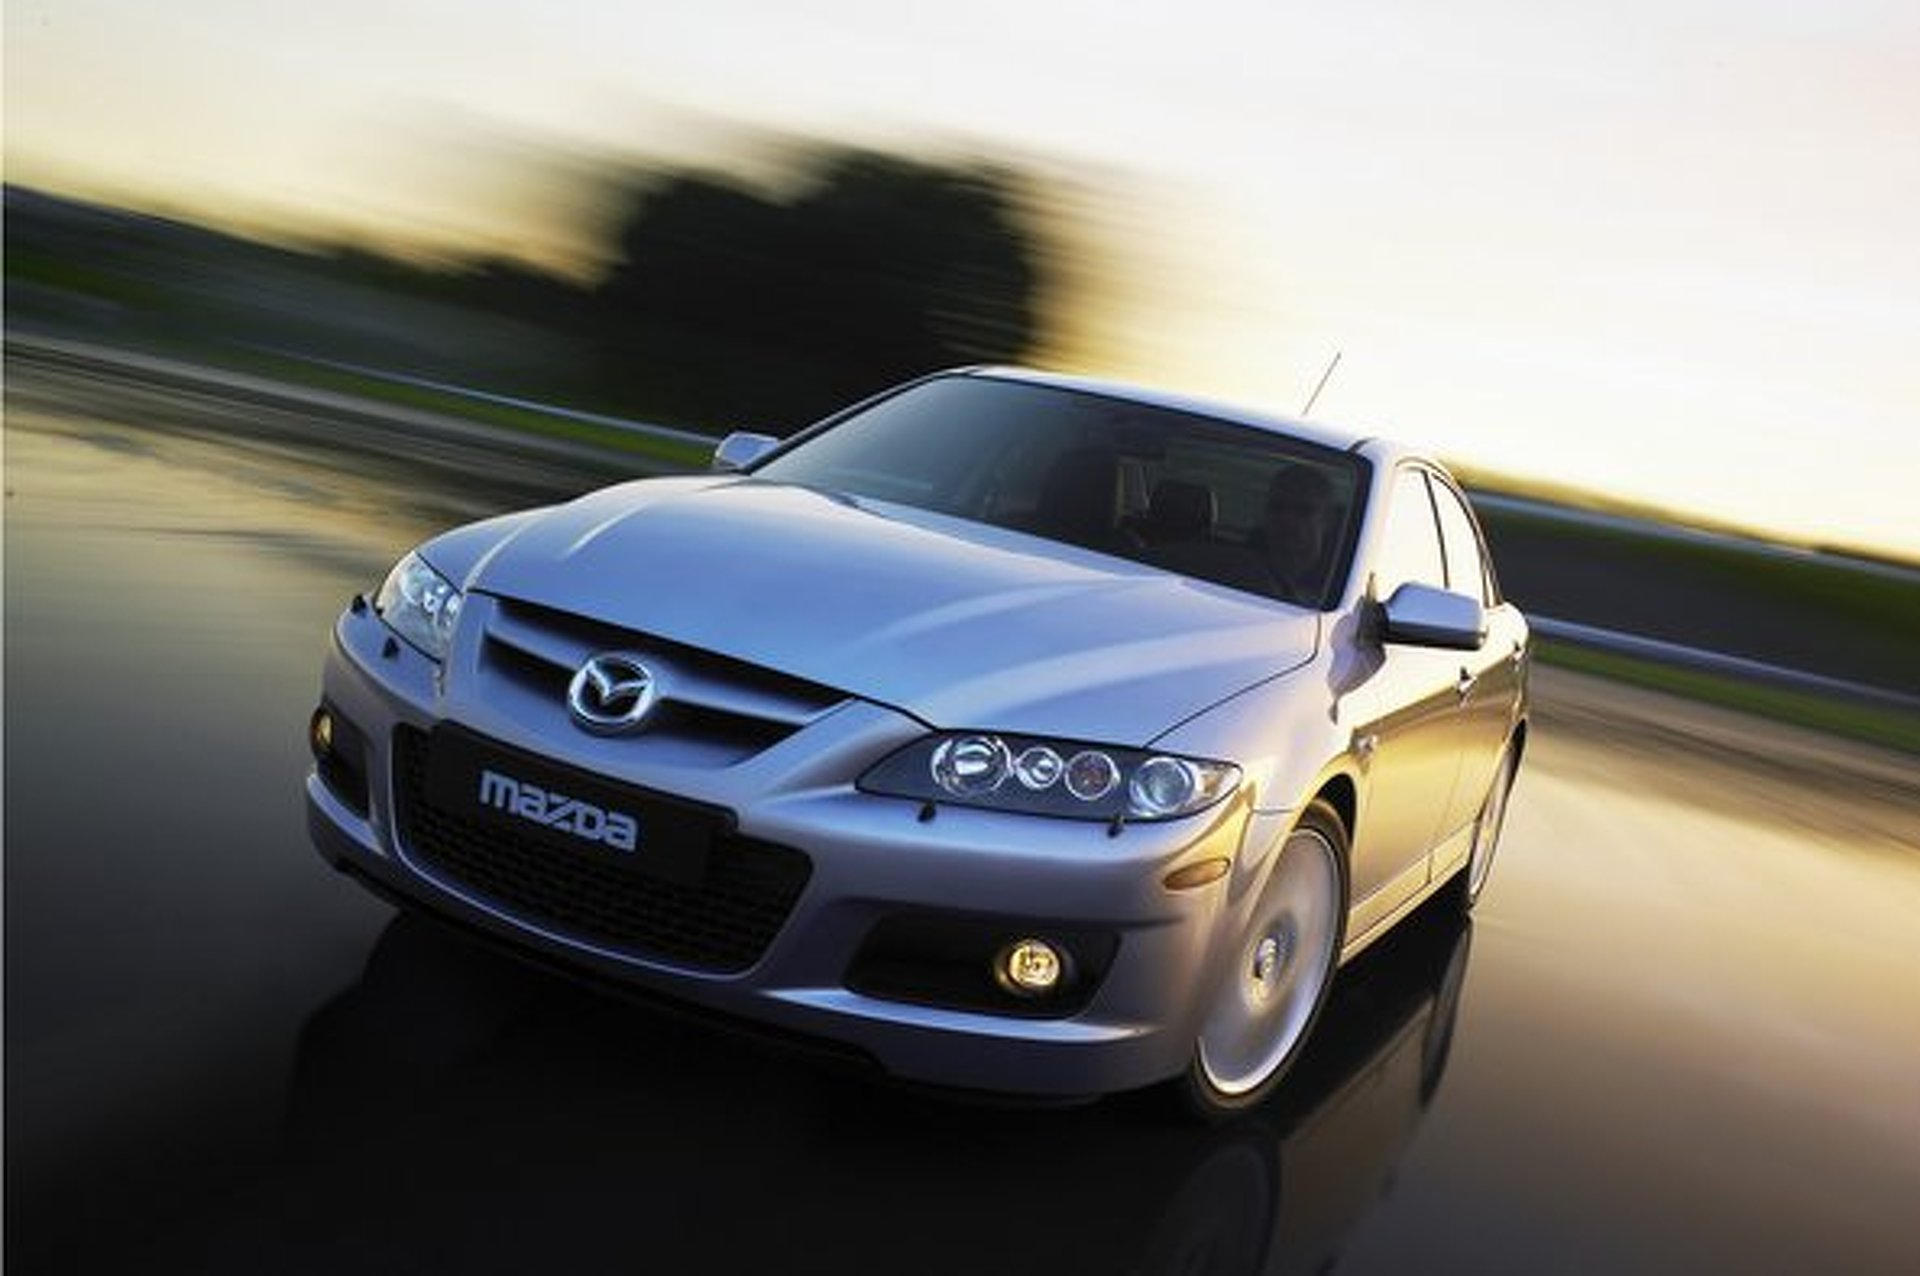 Mazda Hinting at Return of Mazdaspeed6 with Coupe Rumors?